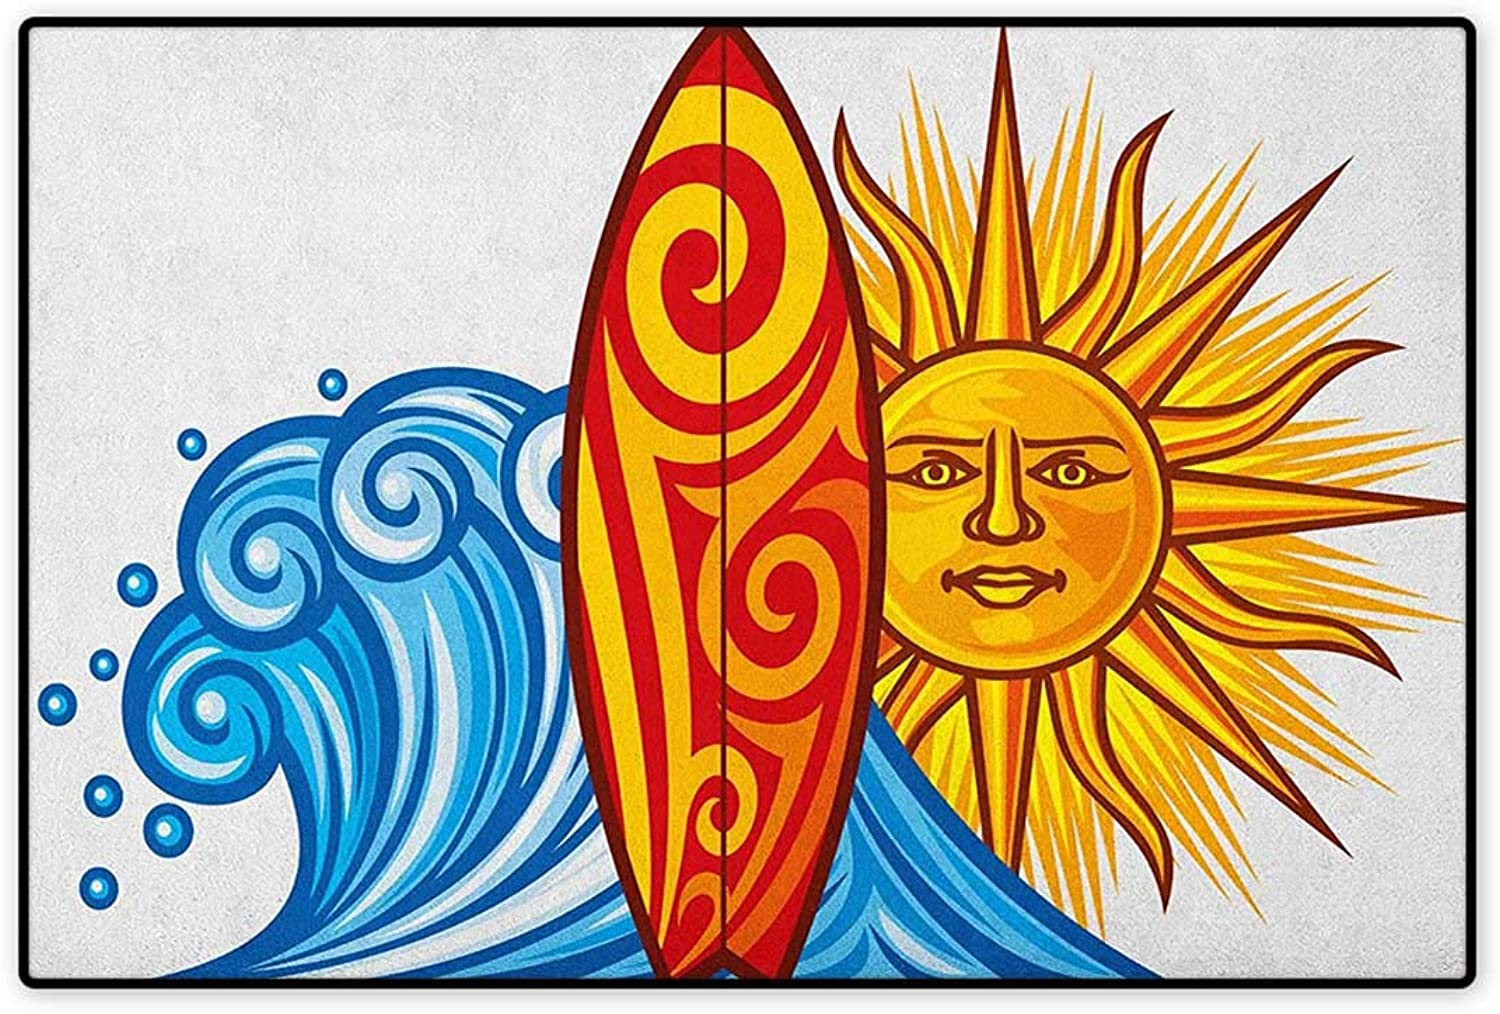 Ride The Wave,Door Mat Indoors,Ocean Wave with Sun and Surfboard Lifestyle Summer Freedom Image,Indoors Doorroom Mats Non Slip,Vermilion Yellow bluee,Size,32 x48  (W80cm x L120cm)